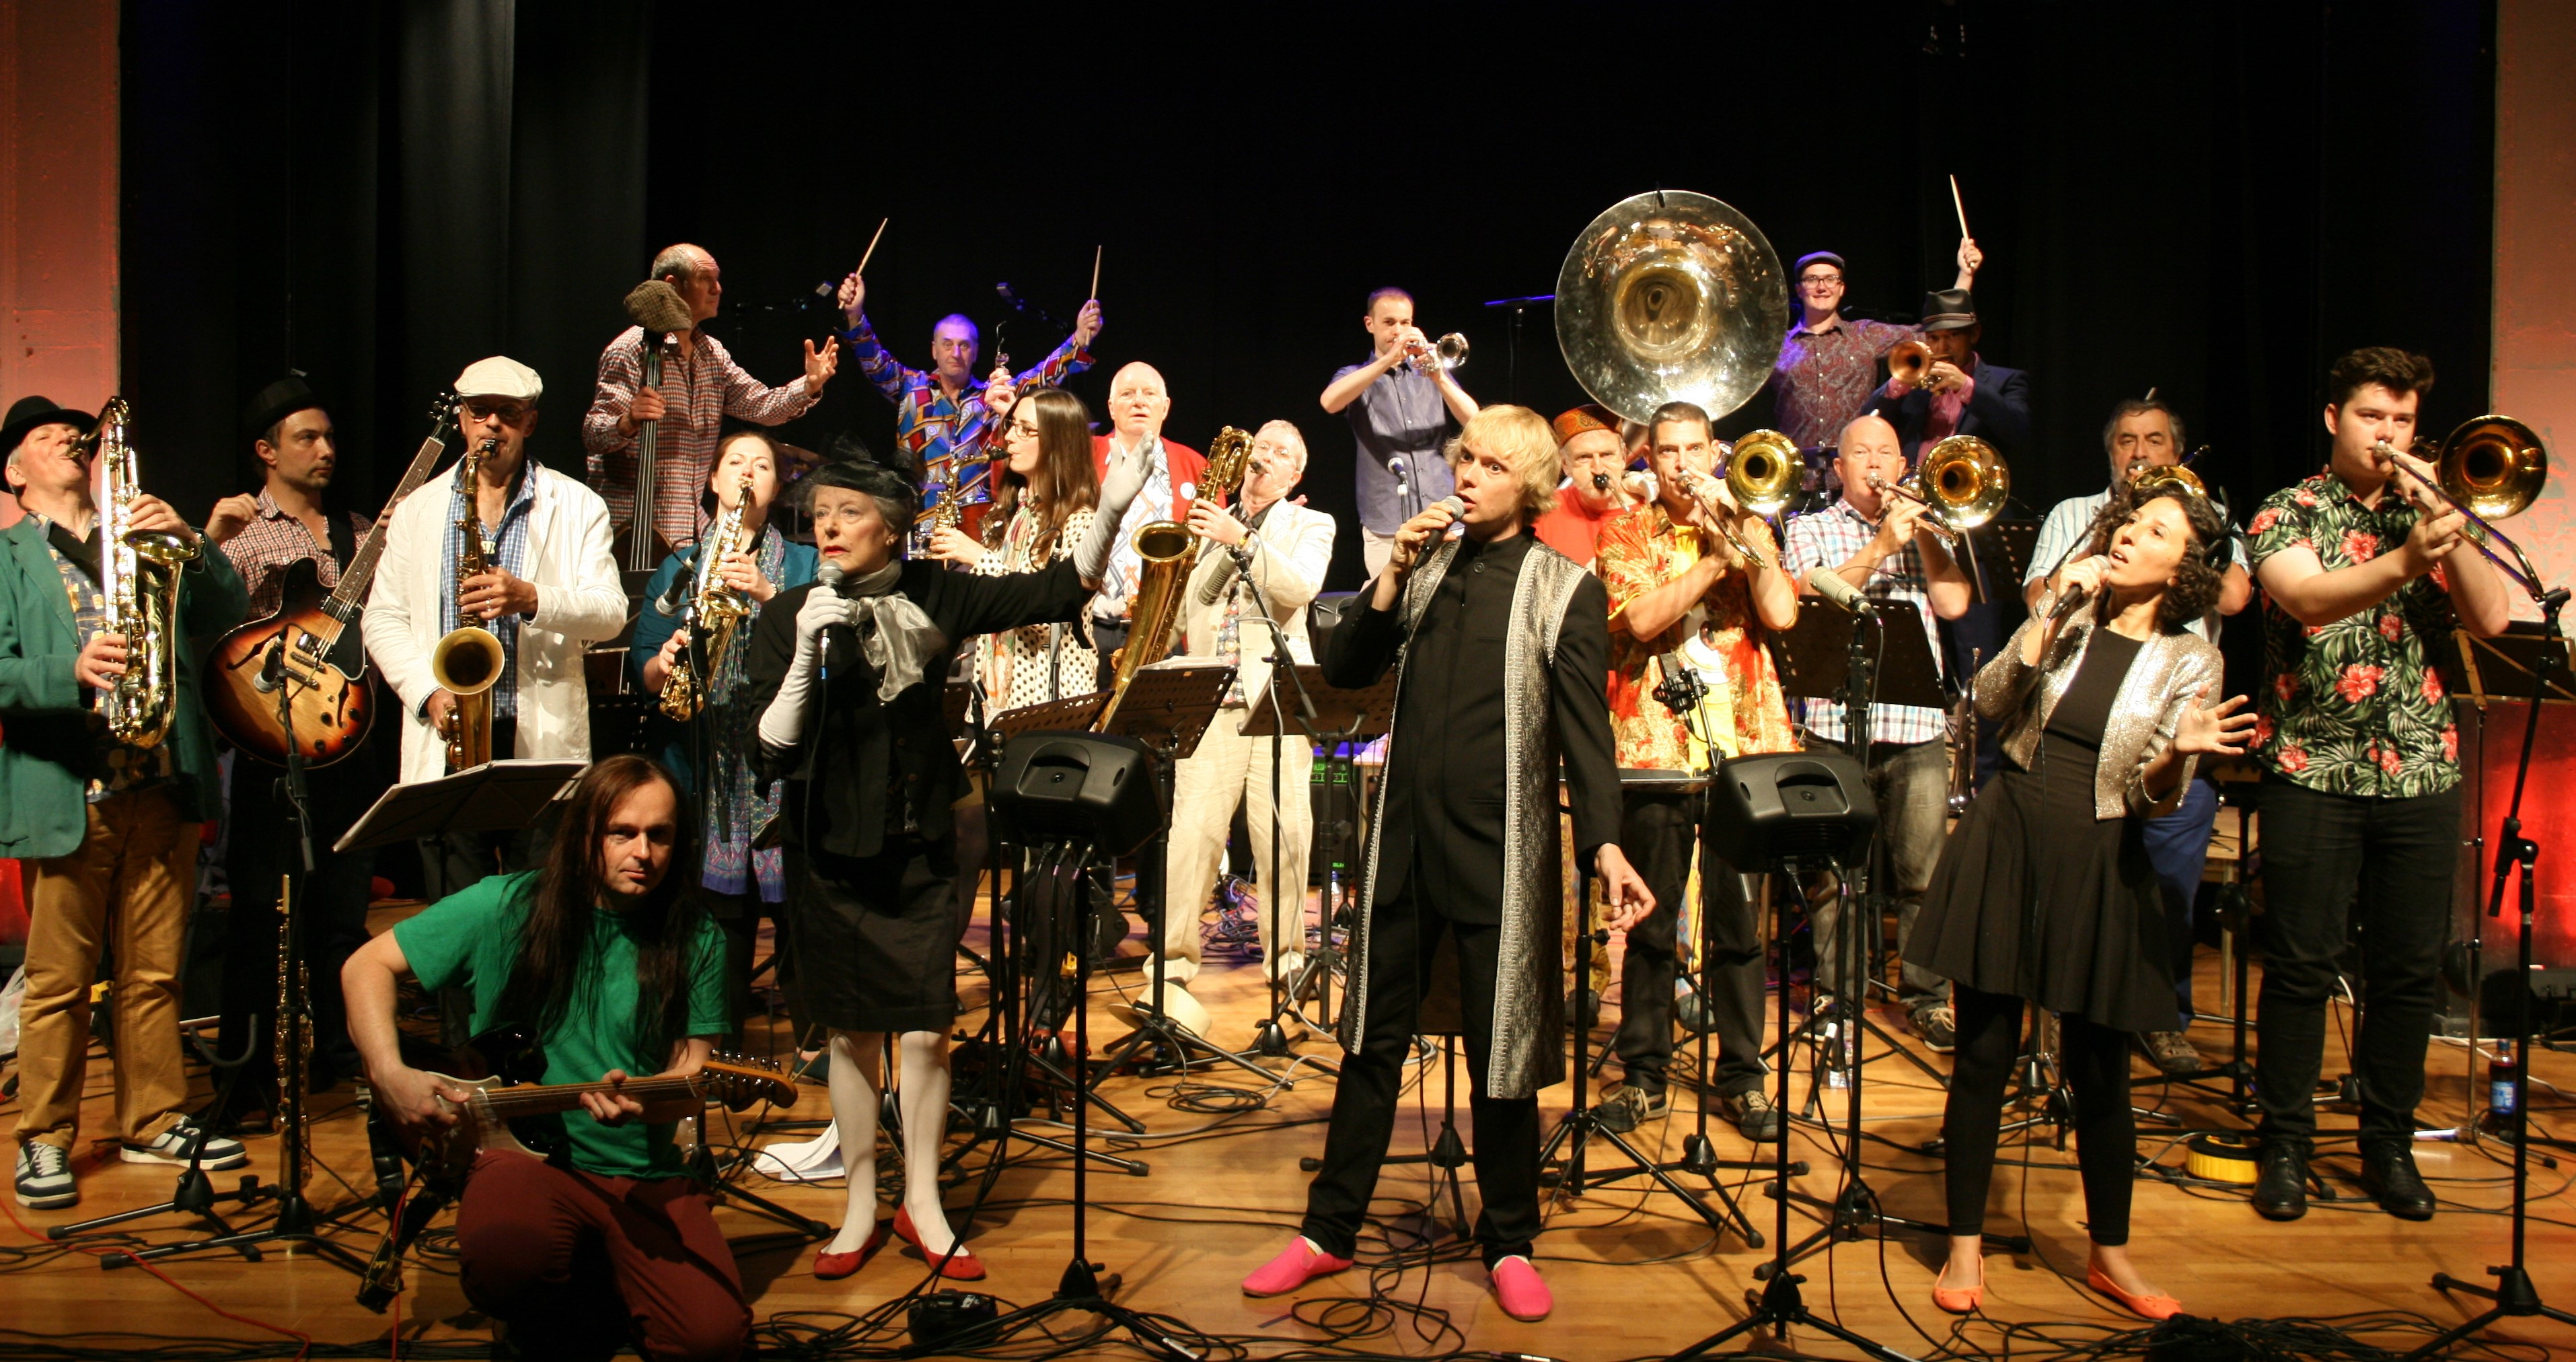 The Uncommon Orchestra image 1